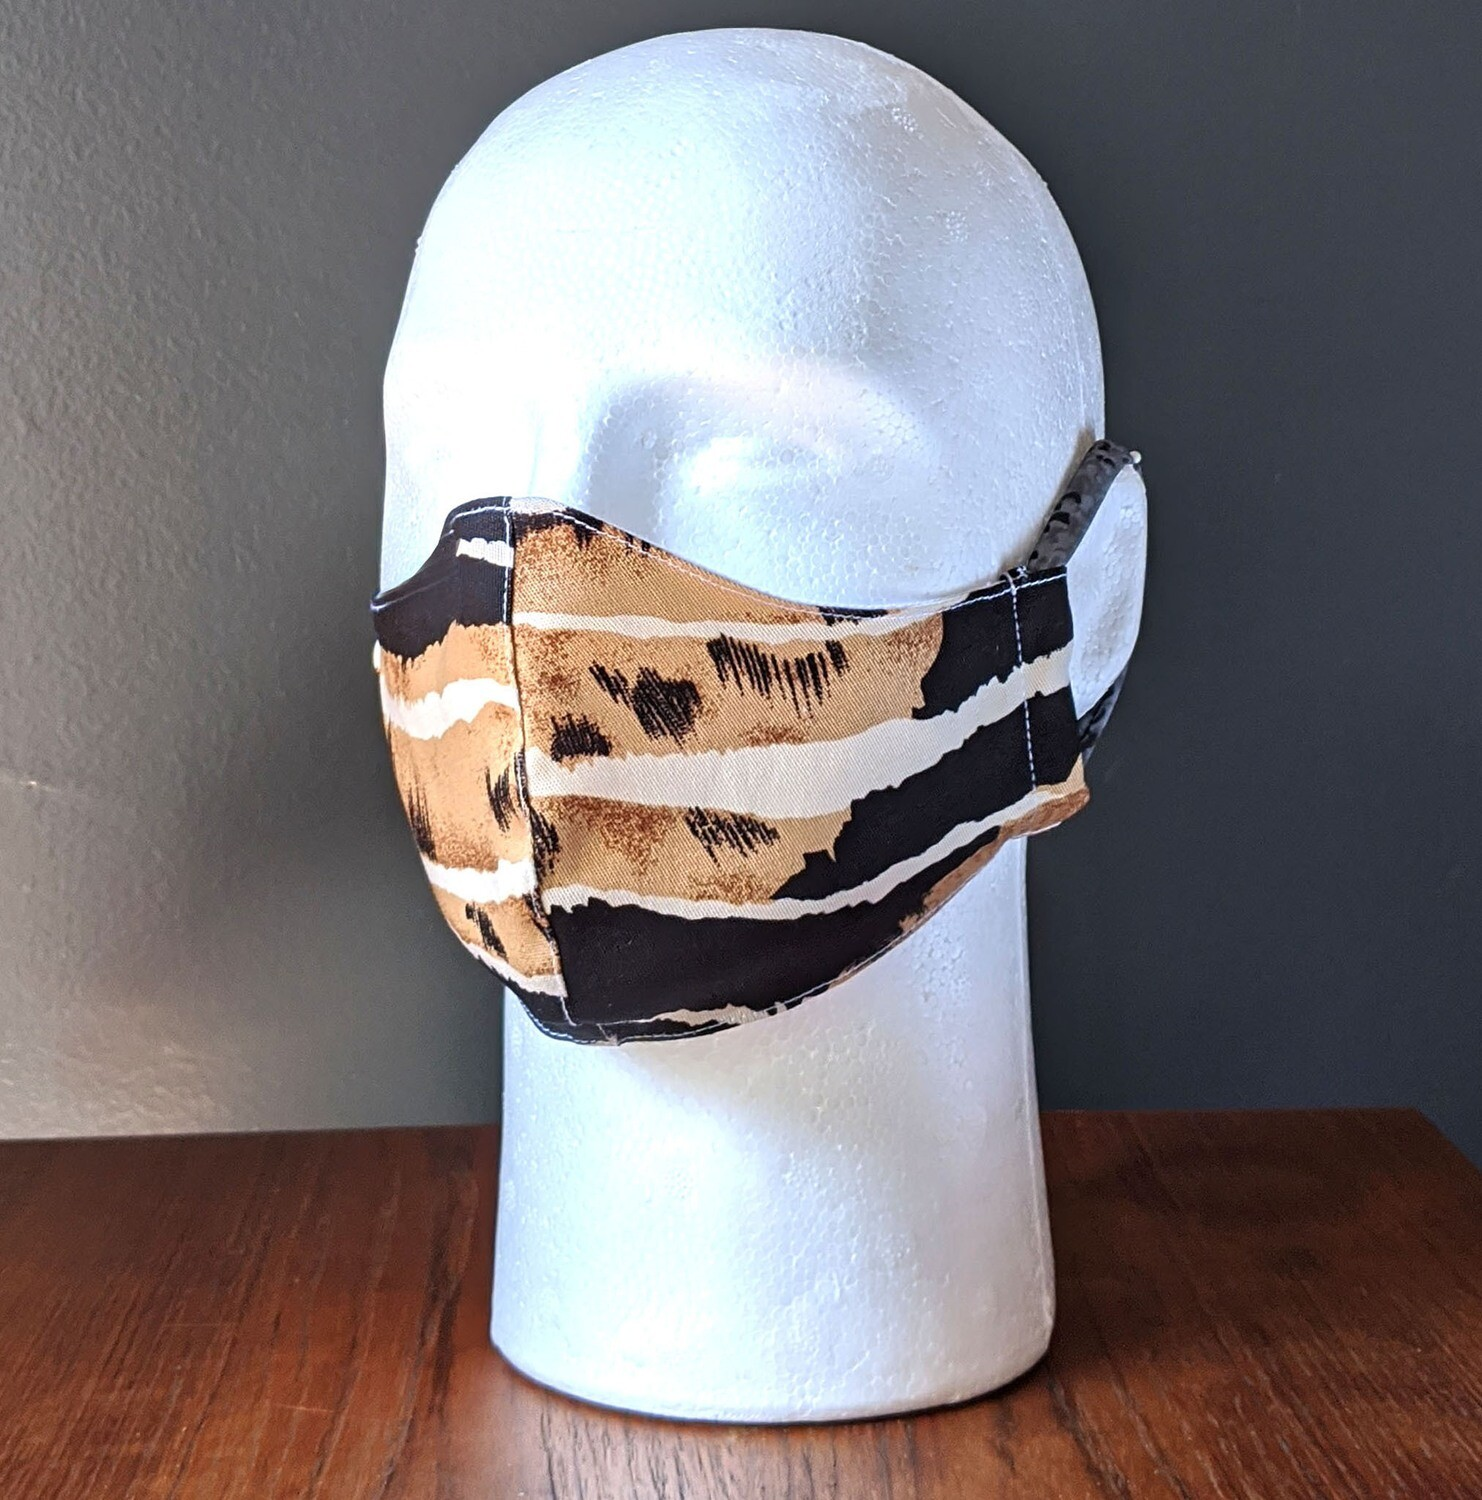 Safari Animal Print Face Masks, Small, Unisex, Washable, Reusable, Double Layer for Smog, Pollen, Dust, Smoke. Colorful Designs. Made in USA